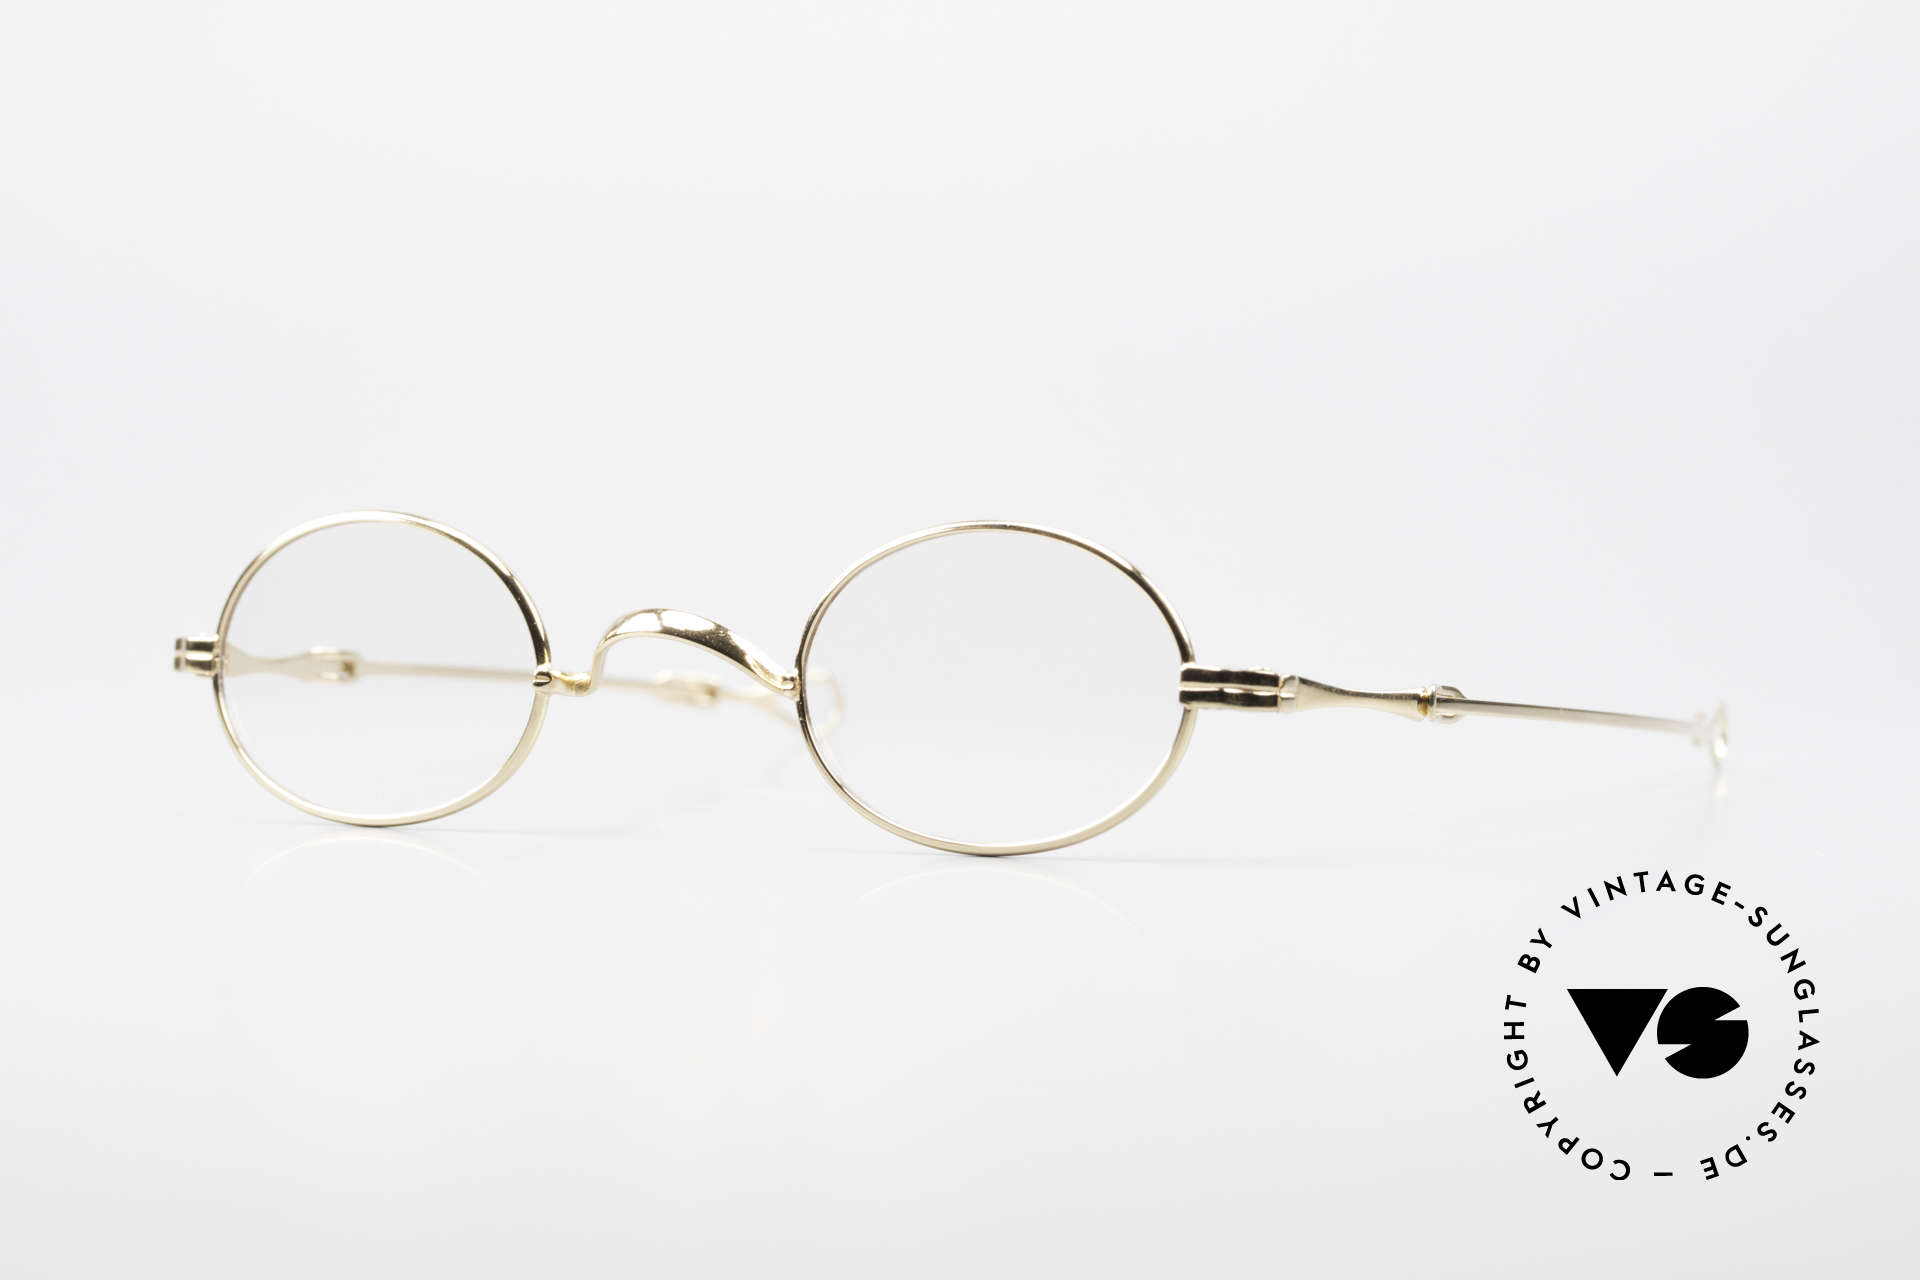 Lunor I 04 Telescopic XS Gold Glasses Slide Temples, extra small oval Lunor frame with telescopic slide temple, Made for Men and Women